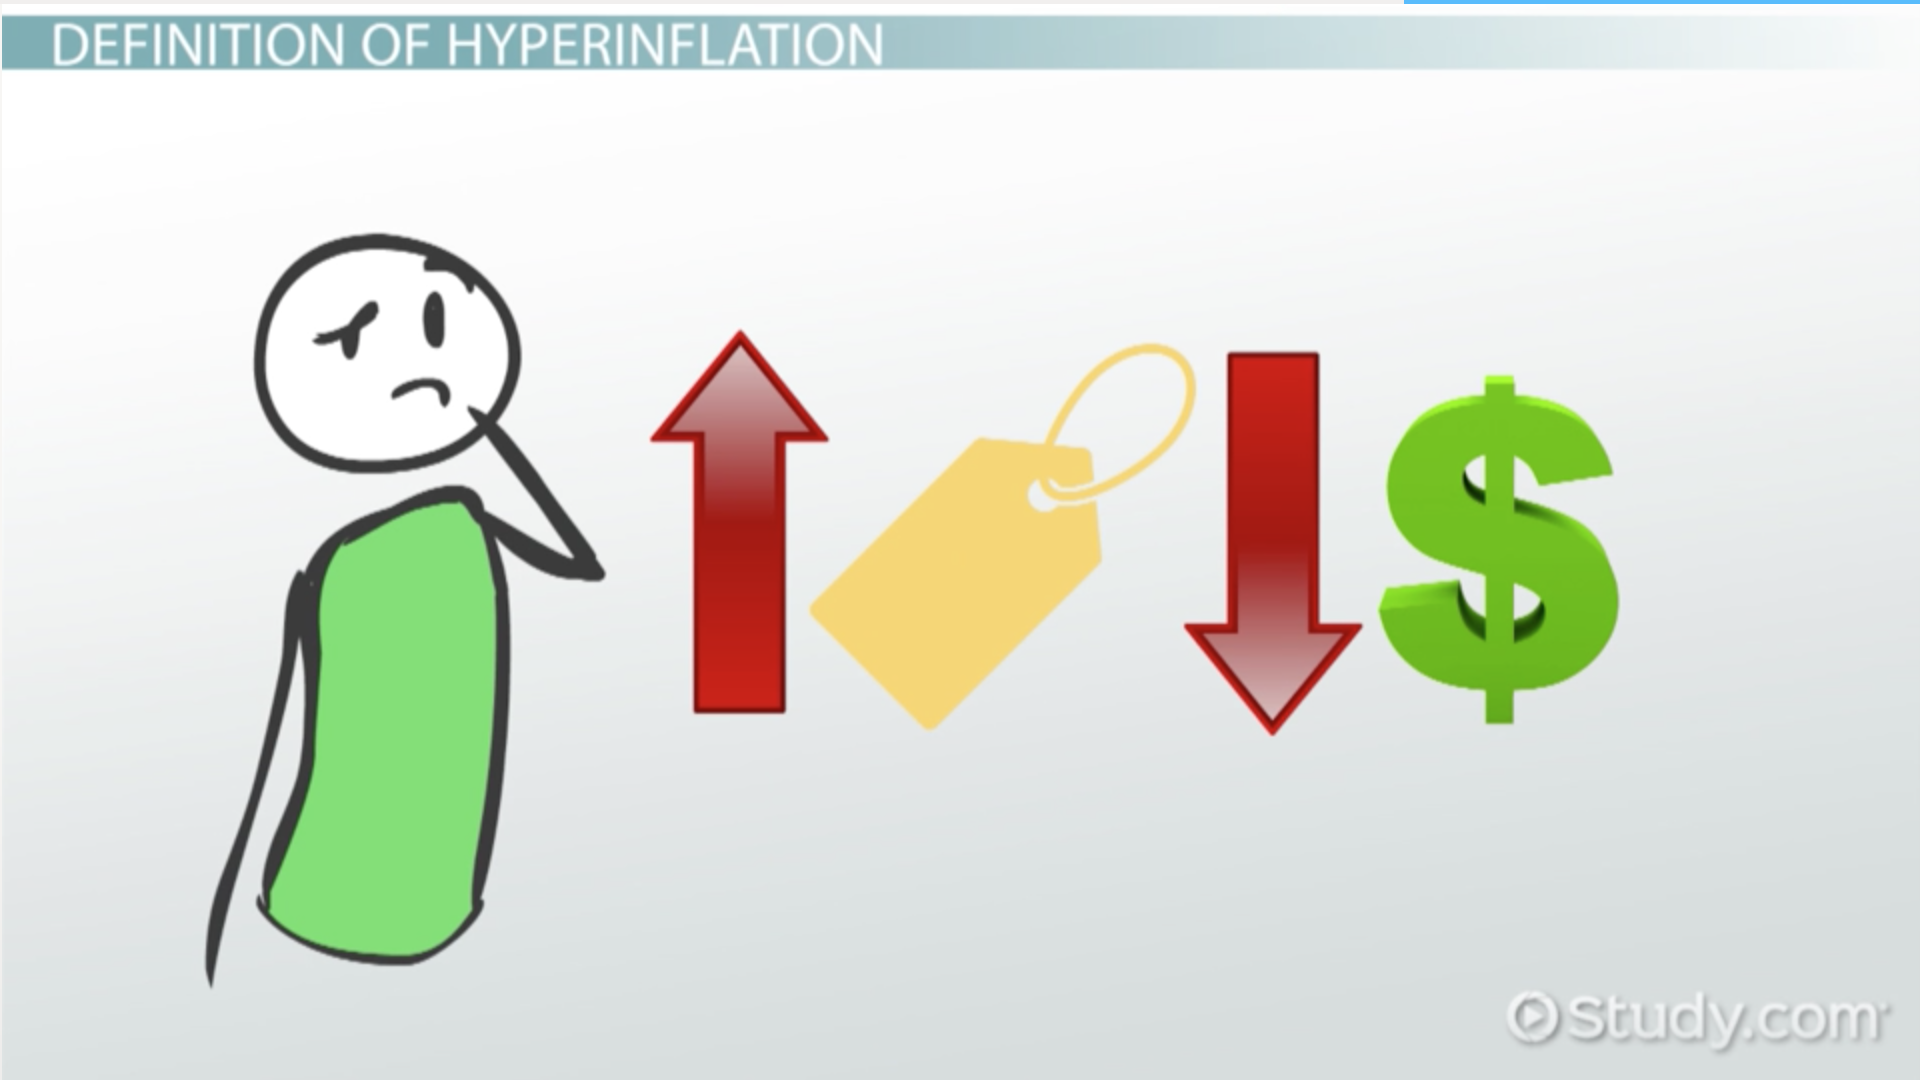 stagflation definition causes effects video lesson what is hyperinflation definition causes effects